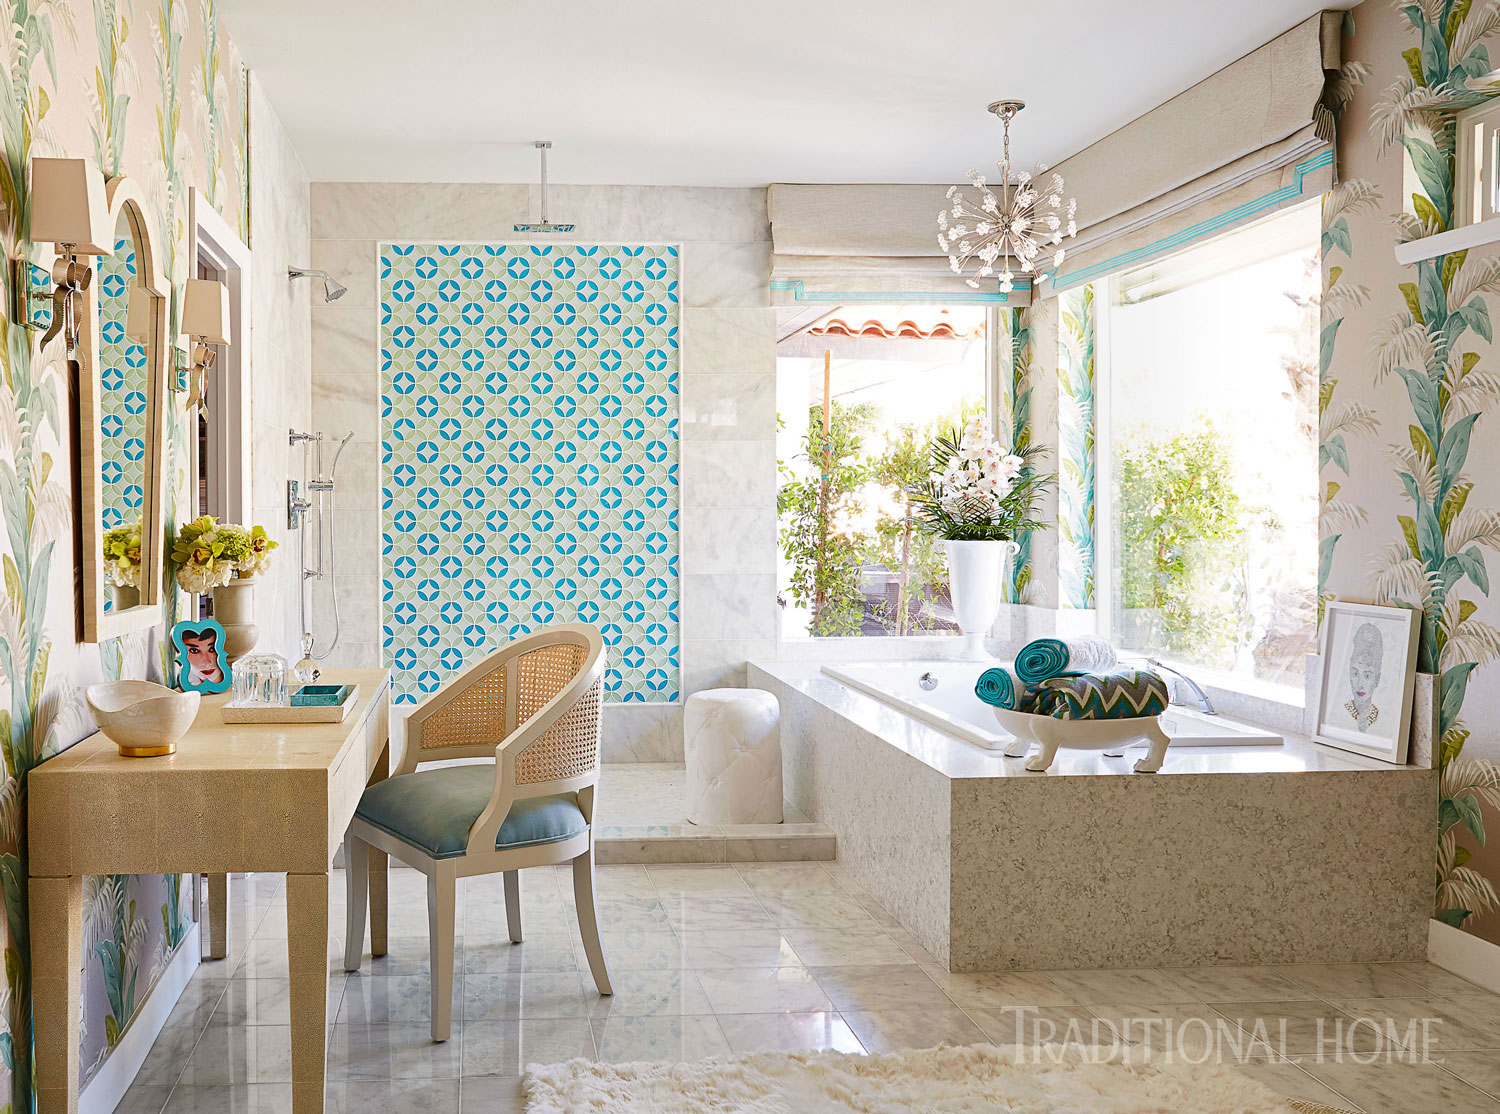 2017 Modernism Week Showhouse | Traditional Home